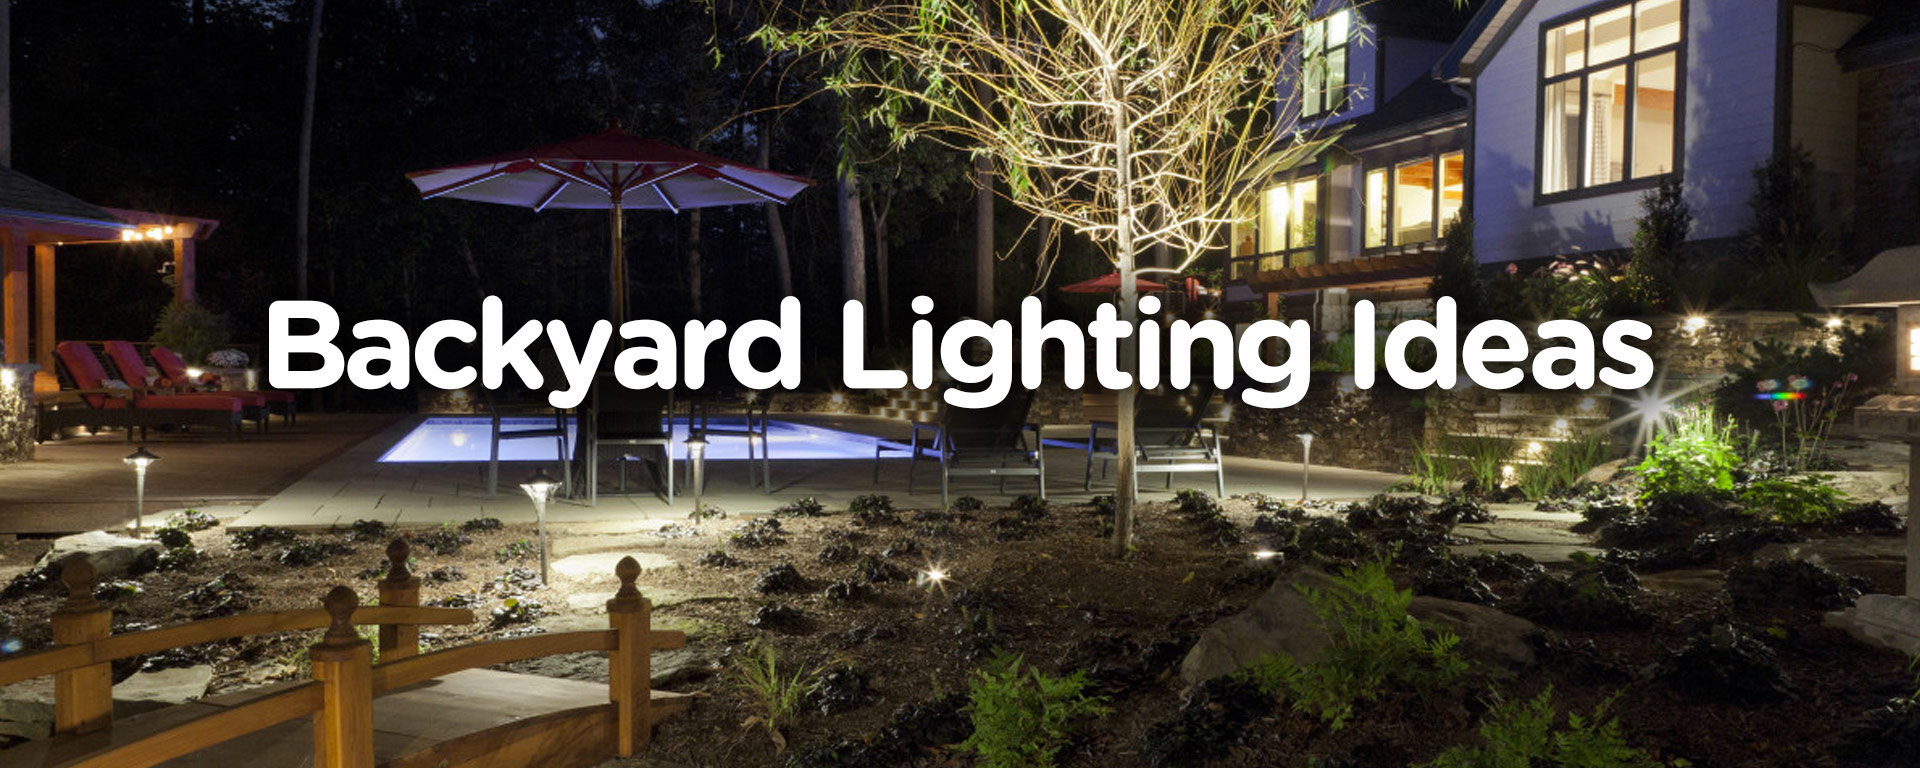 10 Ways To Decorate The Backyard With Lighting